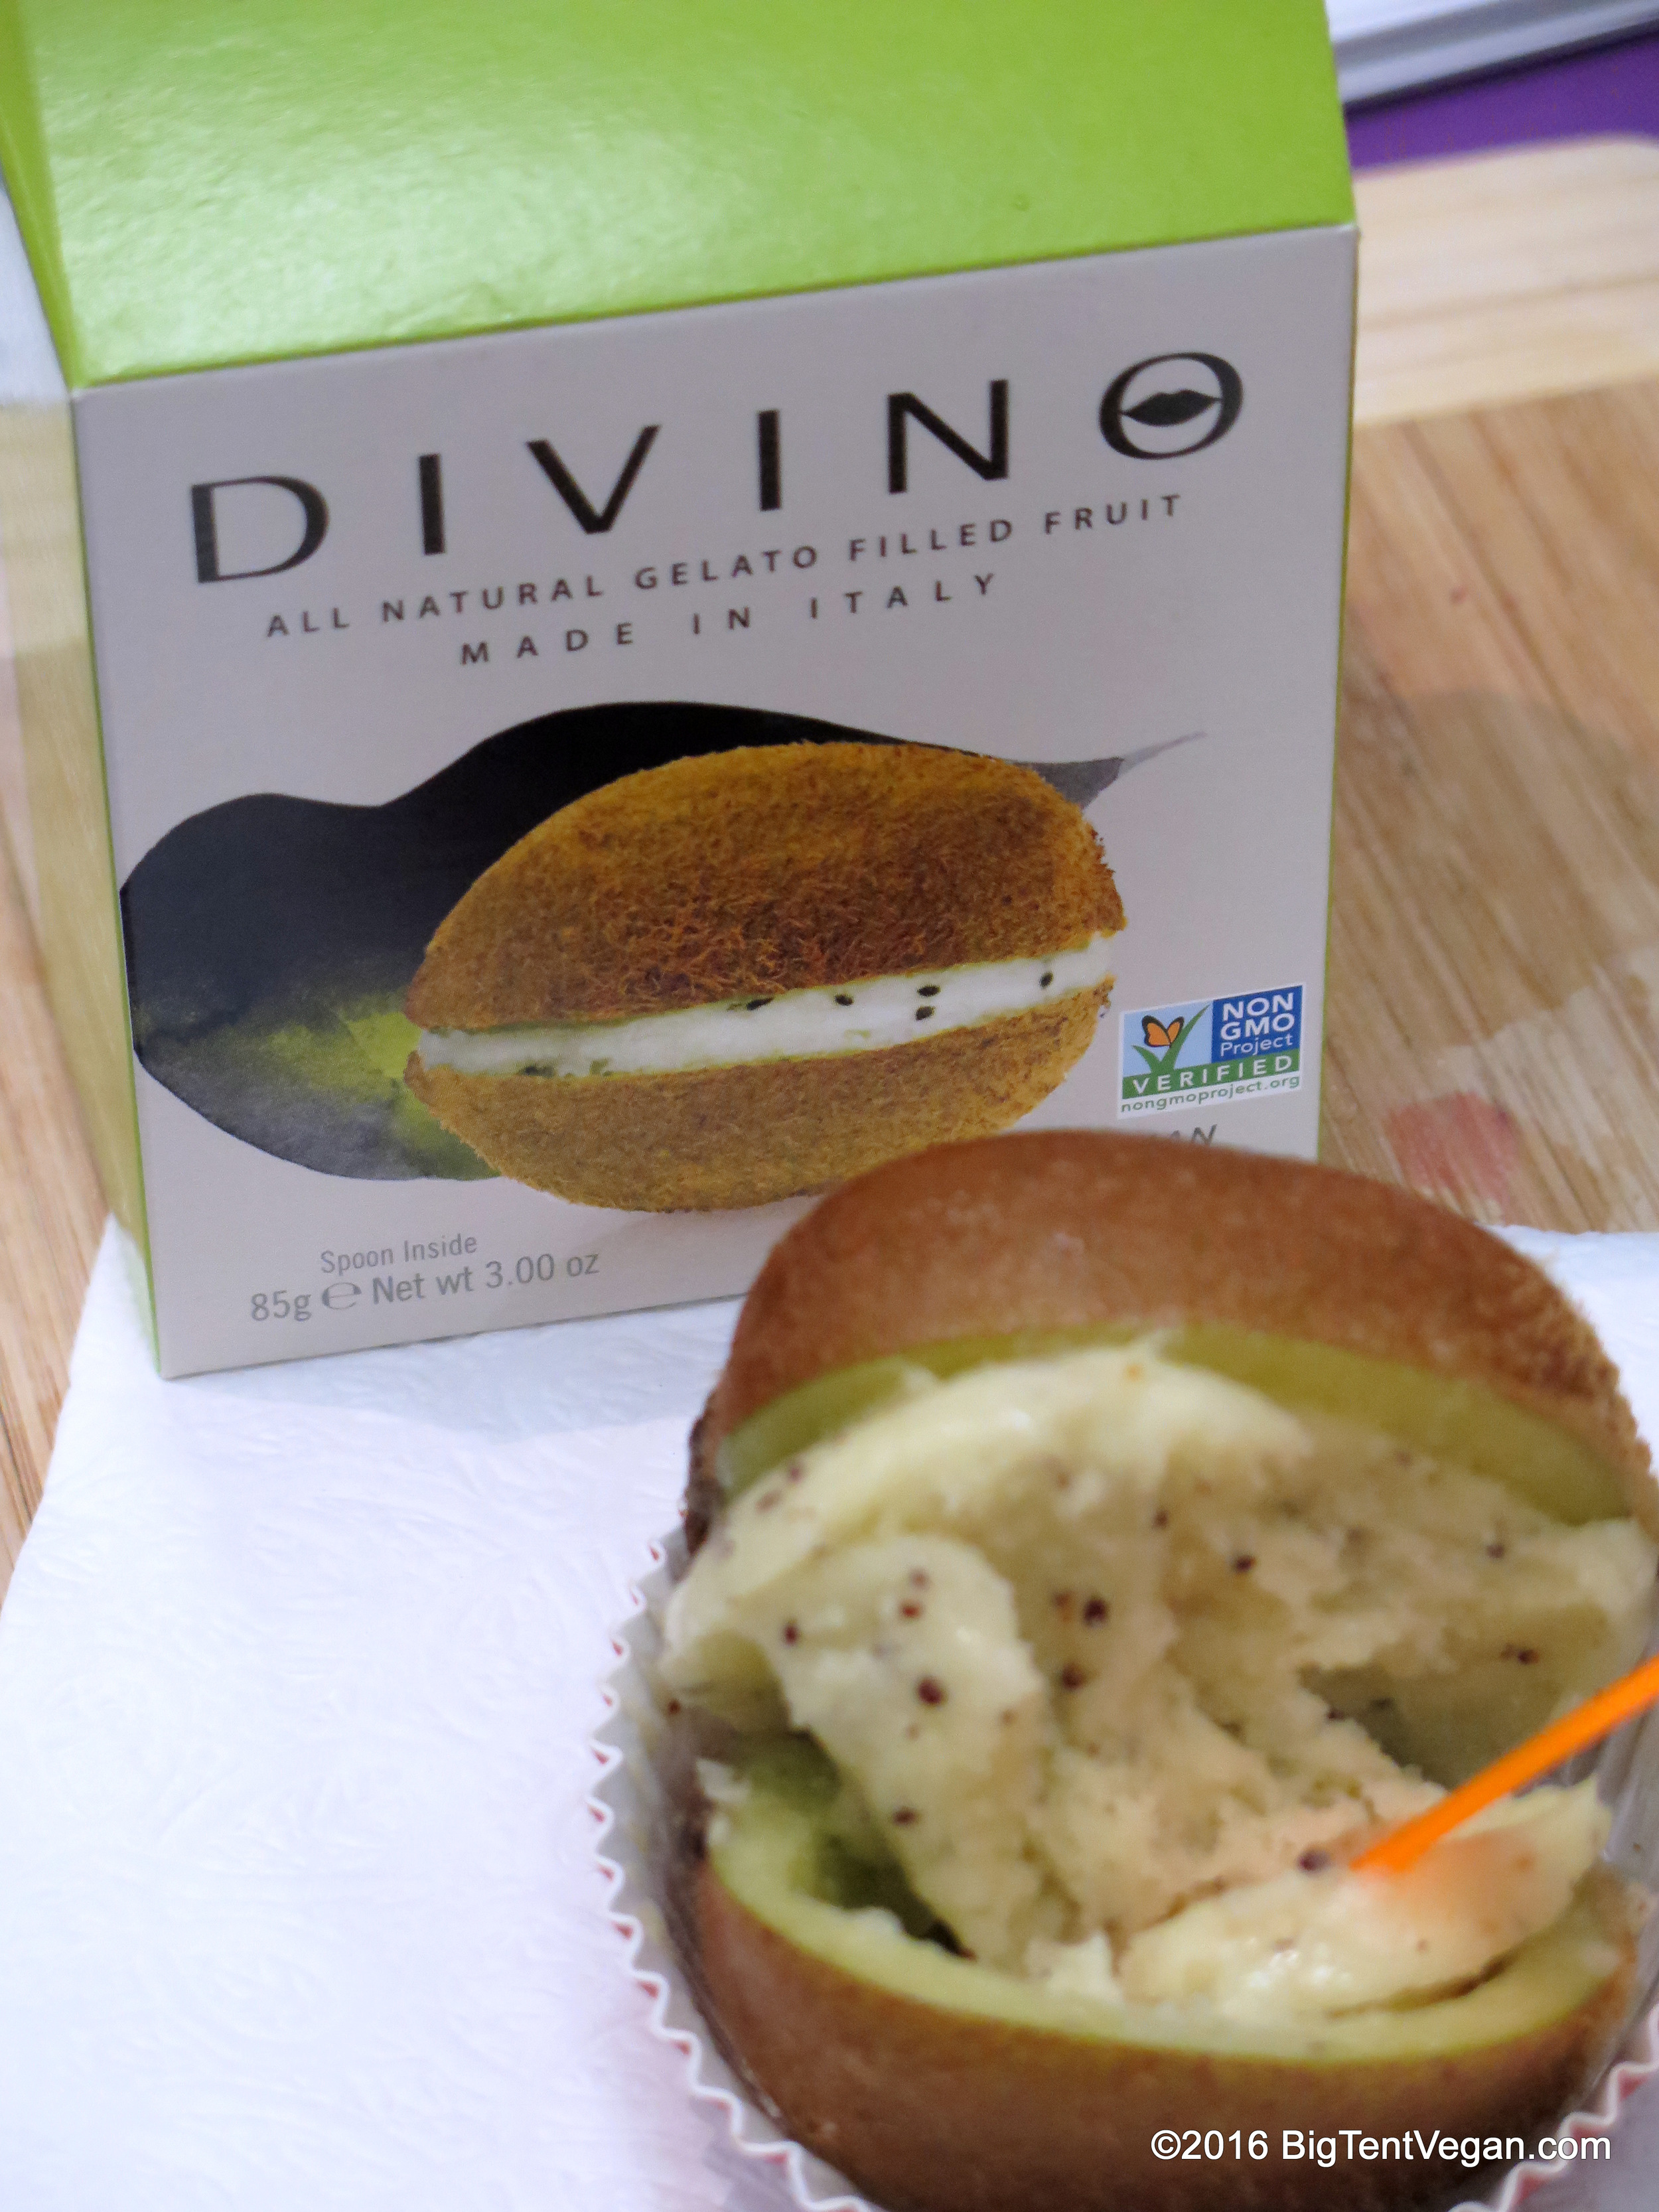 Close-up of the kiwi Divino. Their rep told me that all their gelato used to have cow's milk in it, but they took it out last year, and no one noticed the lack of dairy.So now they're in the process of changing their package to specify Vegan!! Can't wait to see this in wide distribution here in the U.S. Heard they're already big in Japan.